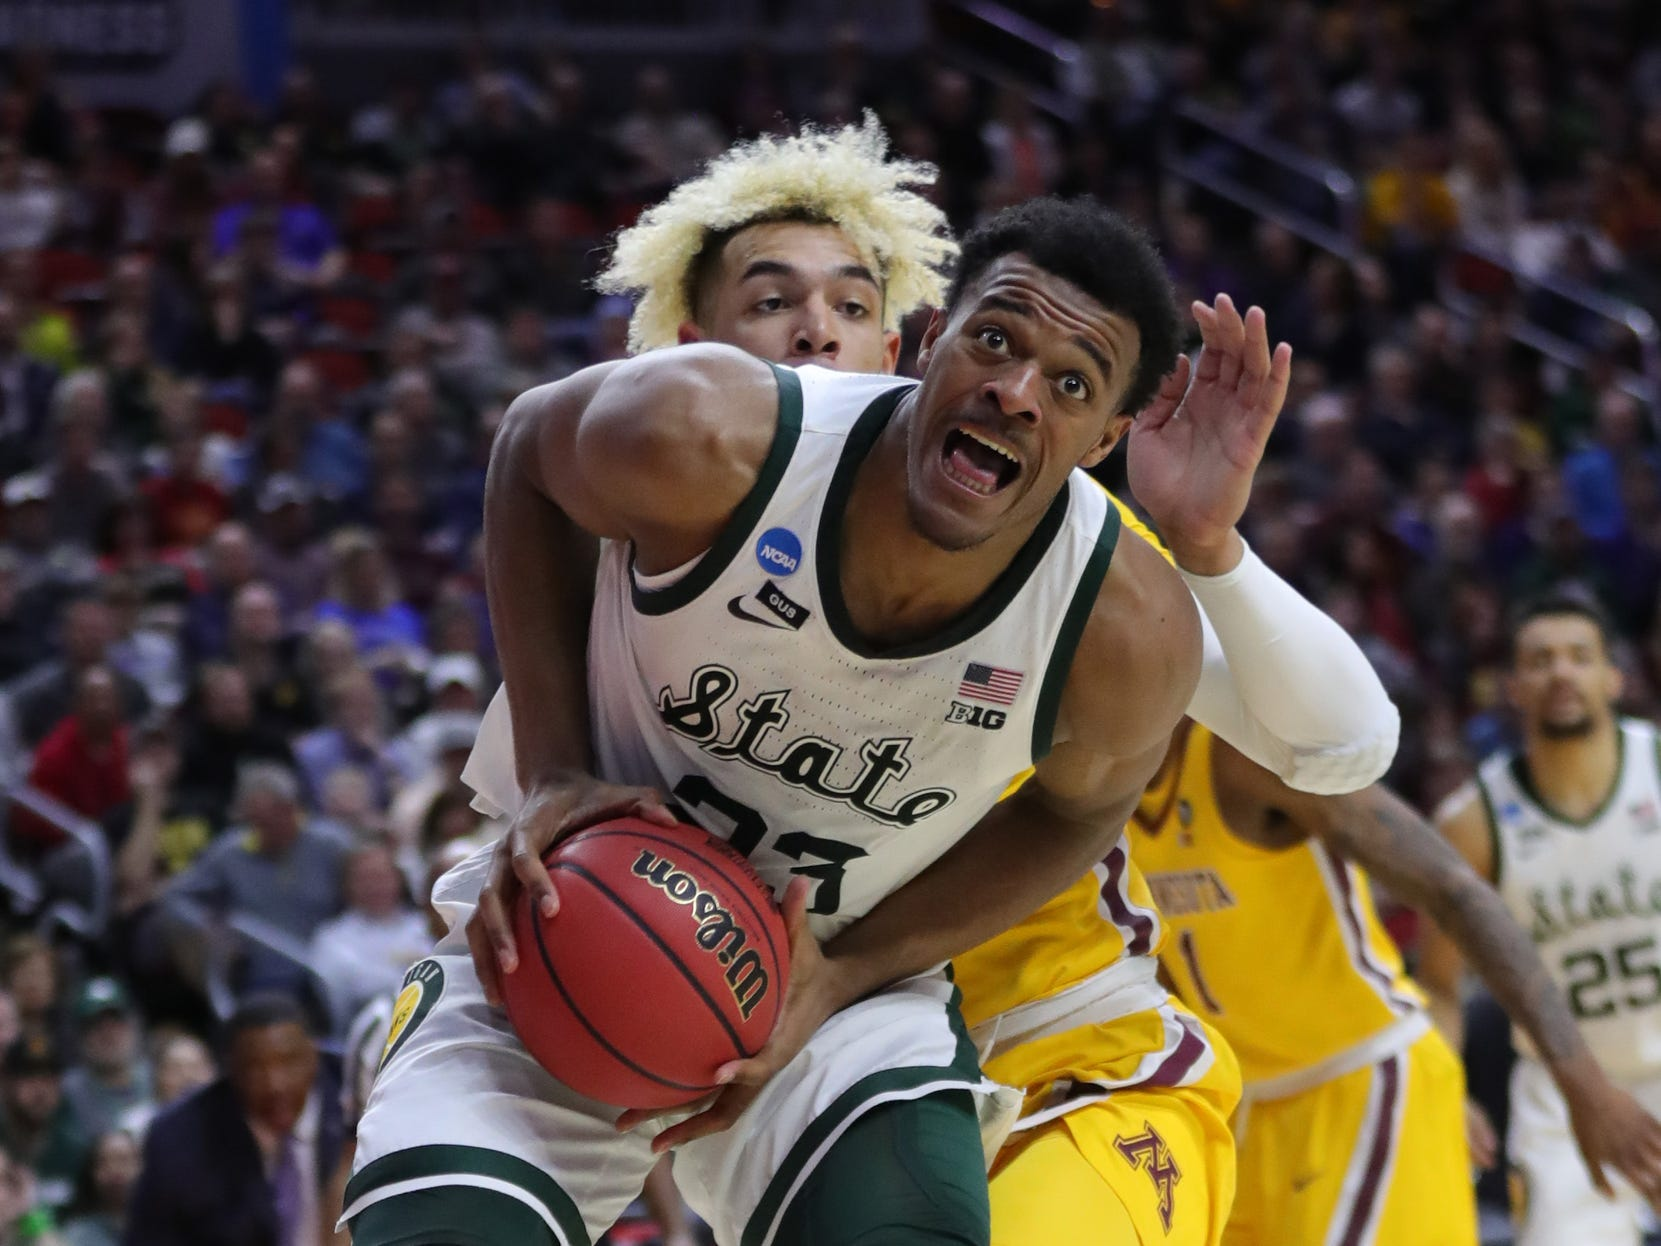 Michigan State's Xavier Tillman drives against Minnesota's Jarvis Omersa during the second half of their second round NCAA tournament game Saturday, March 23, 2019 at Wells Fargo Arena in Des Moines, Iowa.